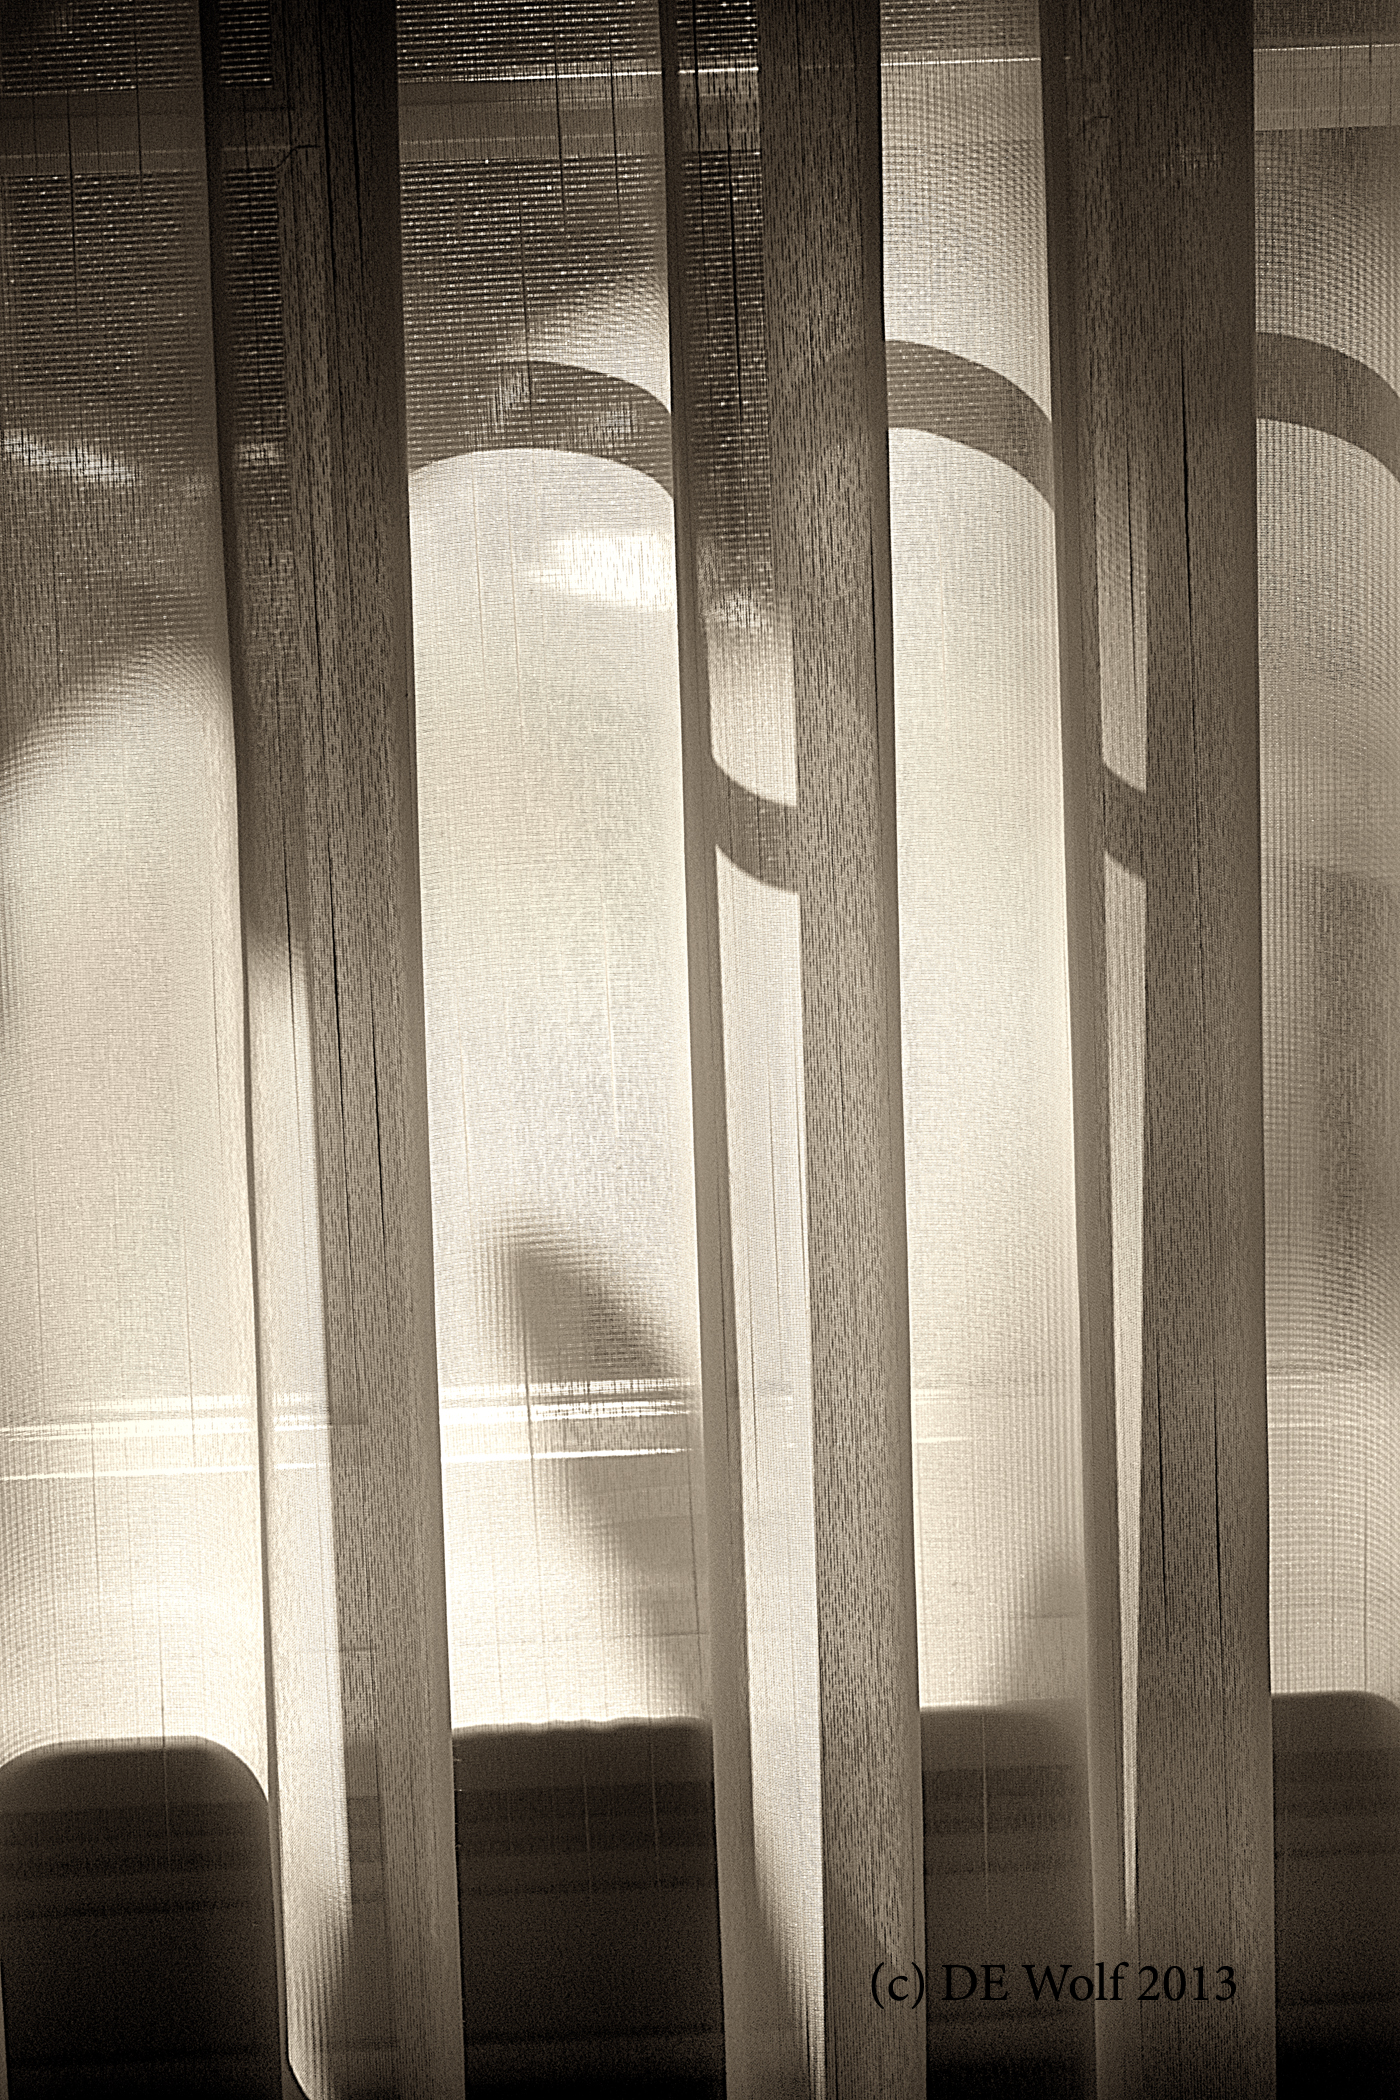 Figure 1 - Morning light diffused through sheer curtains, (c) DE Wolf 2013.